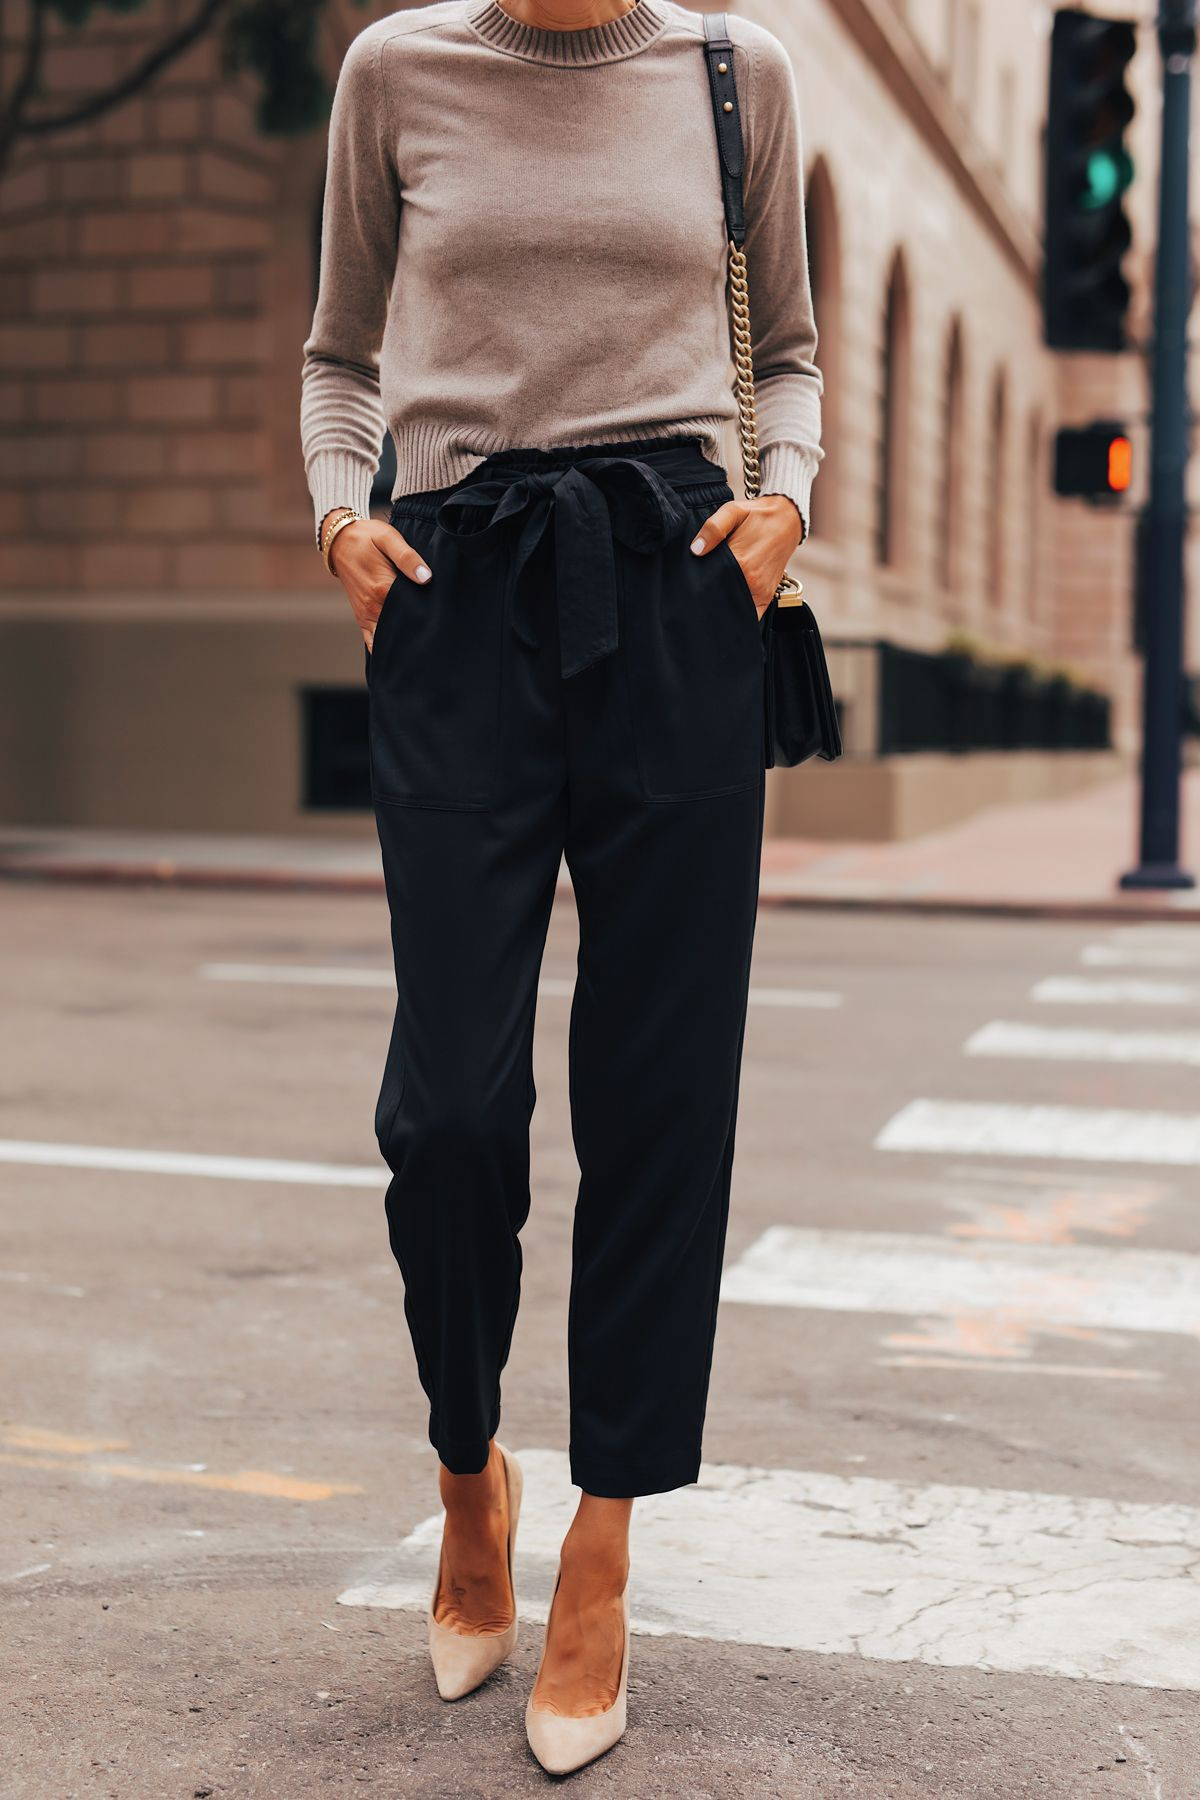 Fashion Jackson Wearing Everlane Taupe Cashmere Sweater Black Tie Waist Pants Nude Pumps #womensfashion